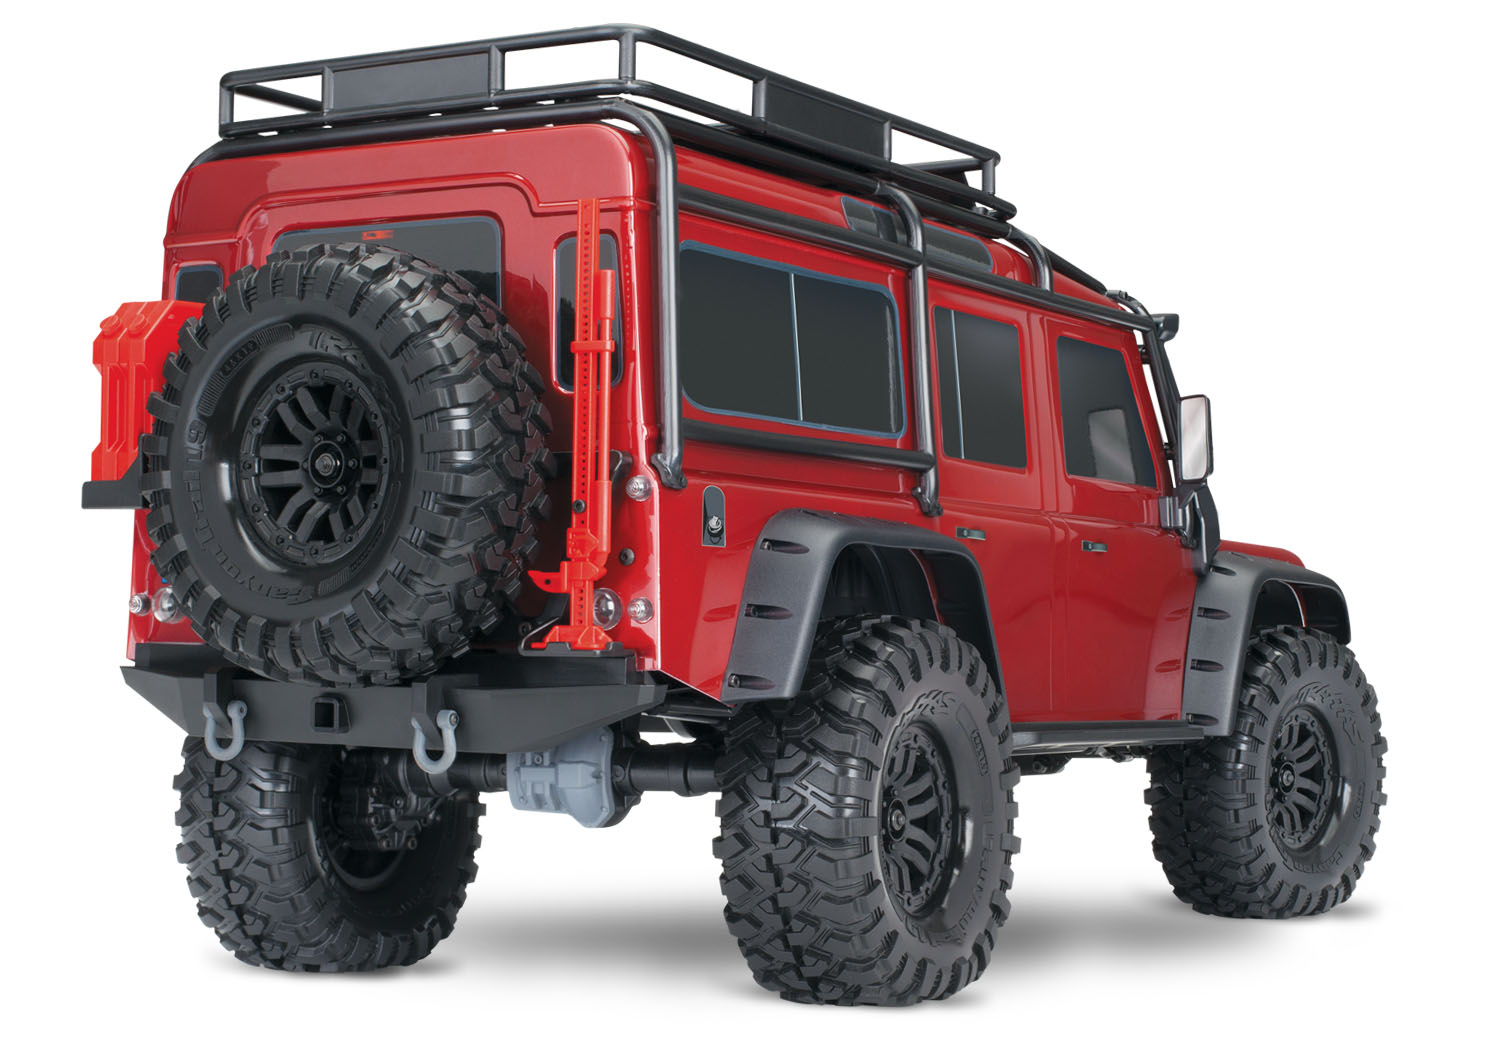 Rc Land Rover Defender Trx 4 By Traxxas 1 10 Scale